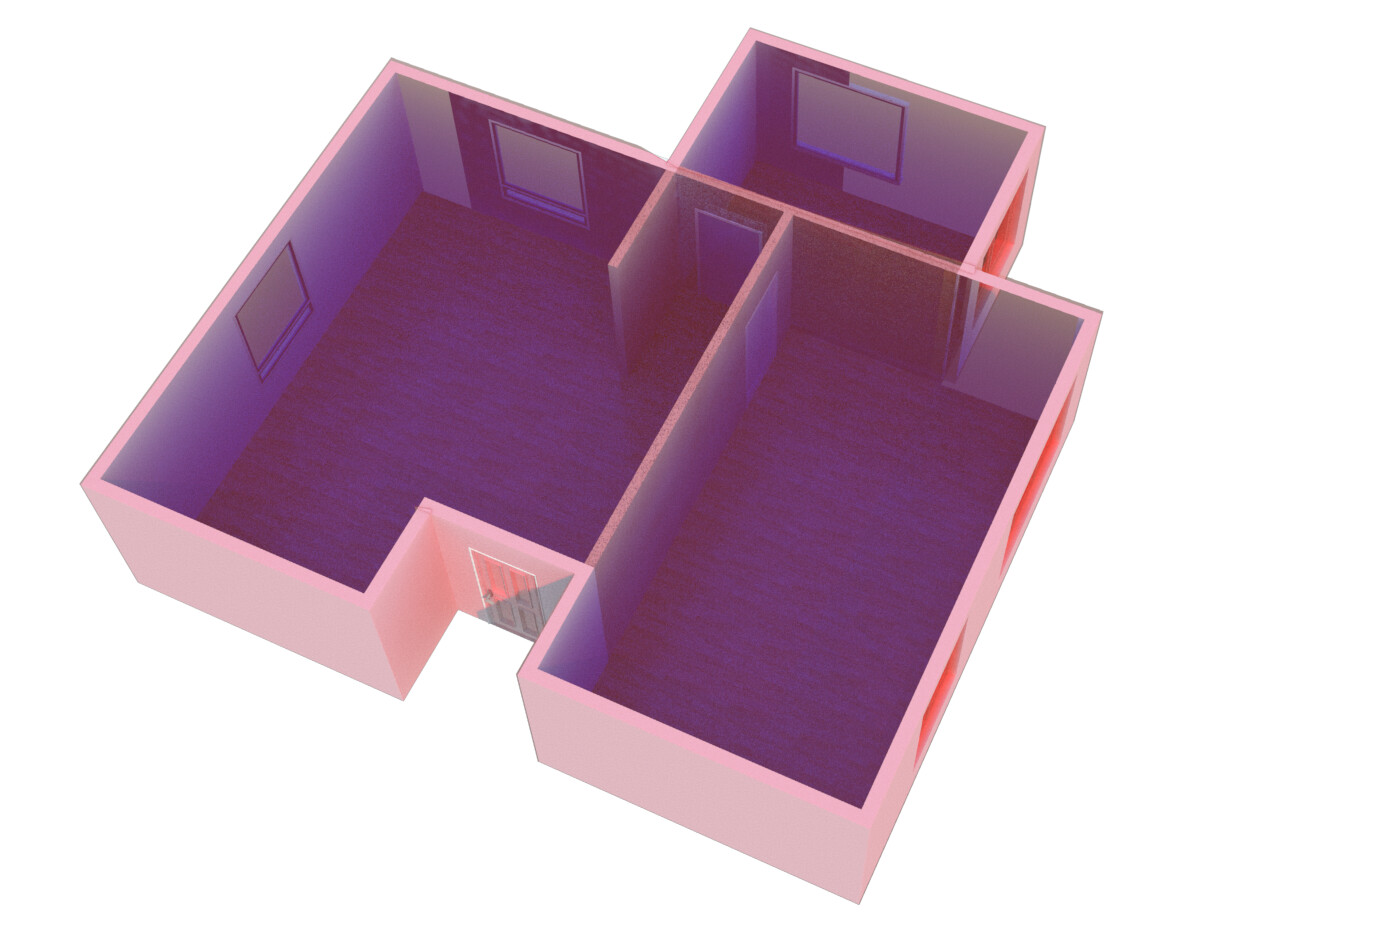 Old work - as part of an AIA presentation on BIM, I produced this to illustrate moduling techniques.